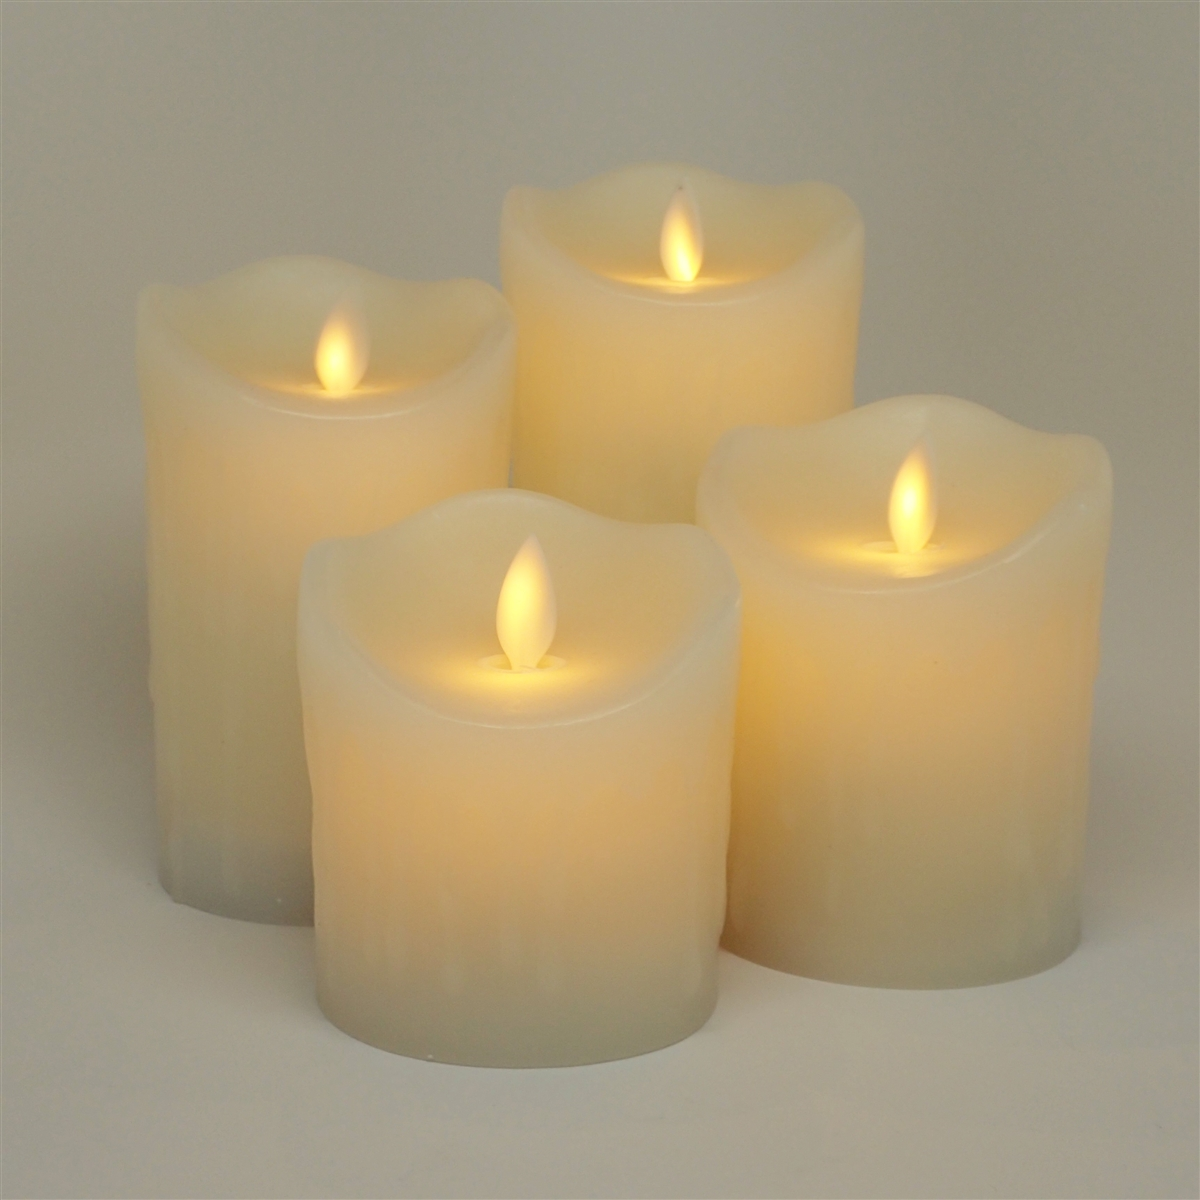 Luminara Moving Flame Action - Indoor Flameless LED Candle Set of 4 - Ivory Dripping Wax ...